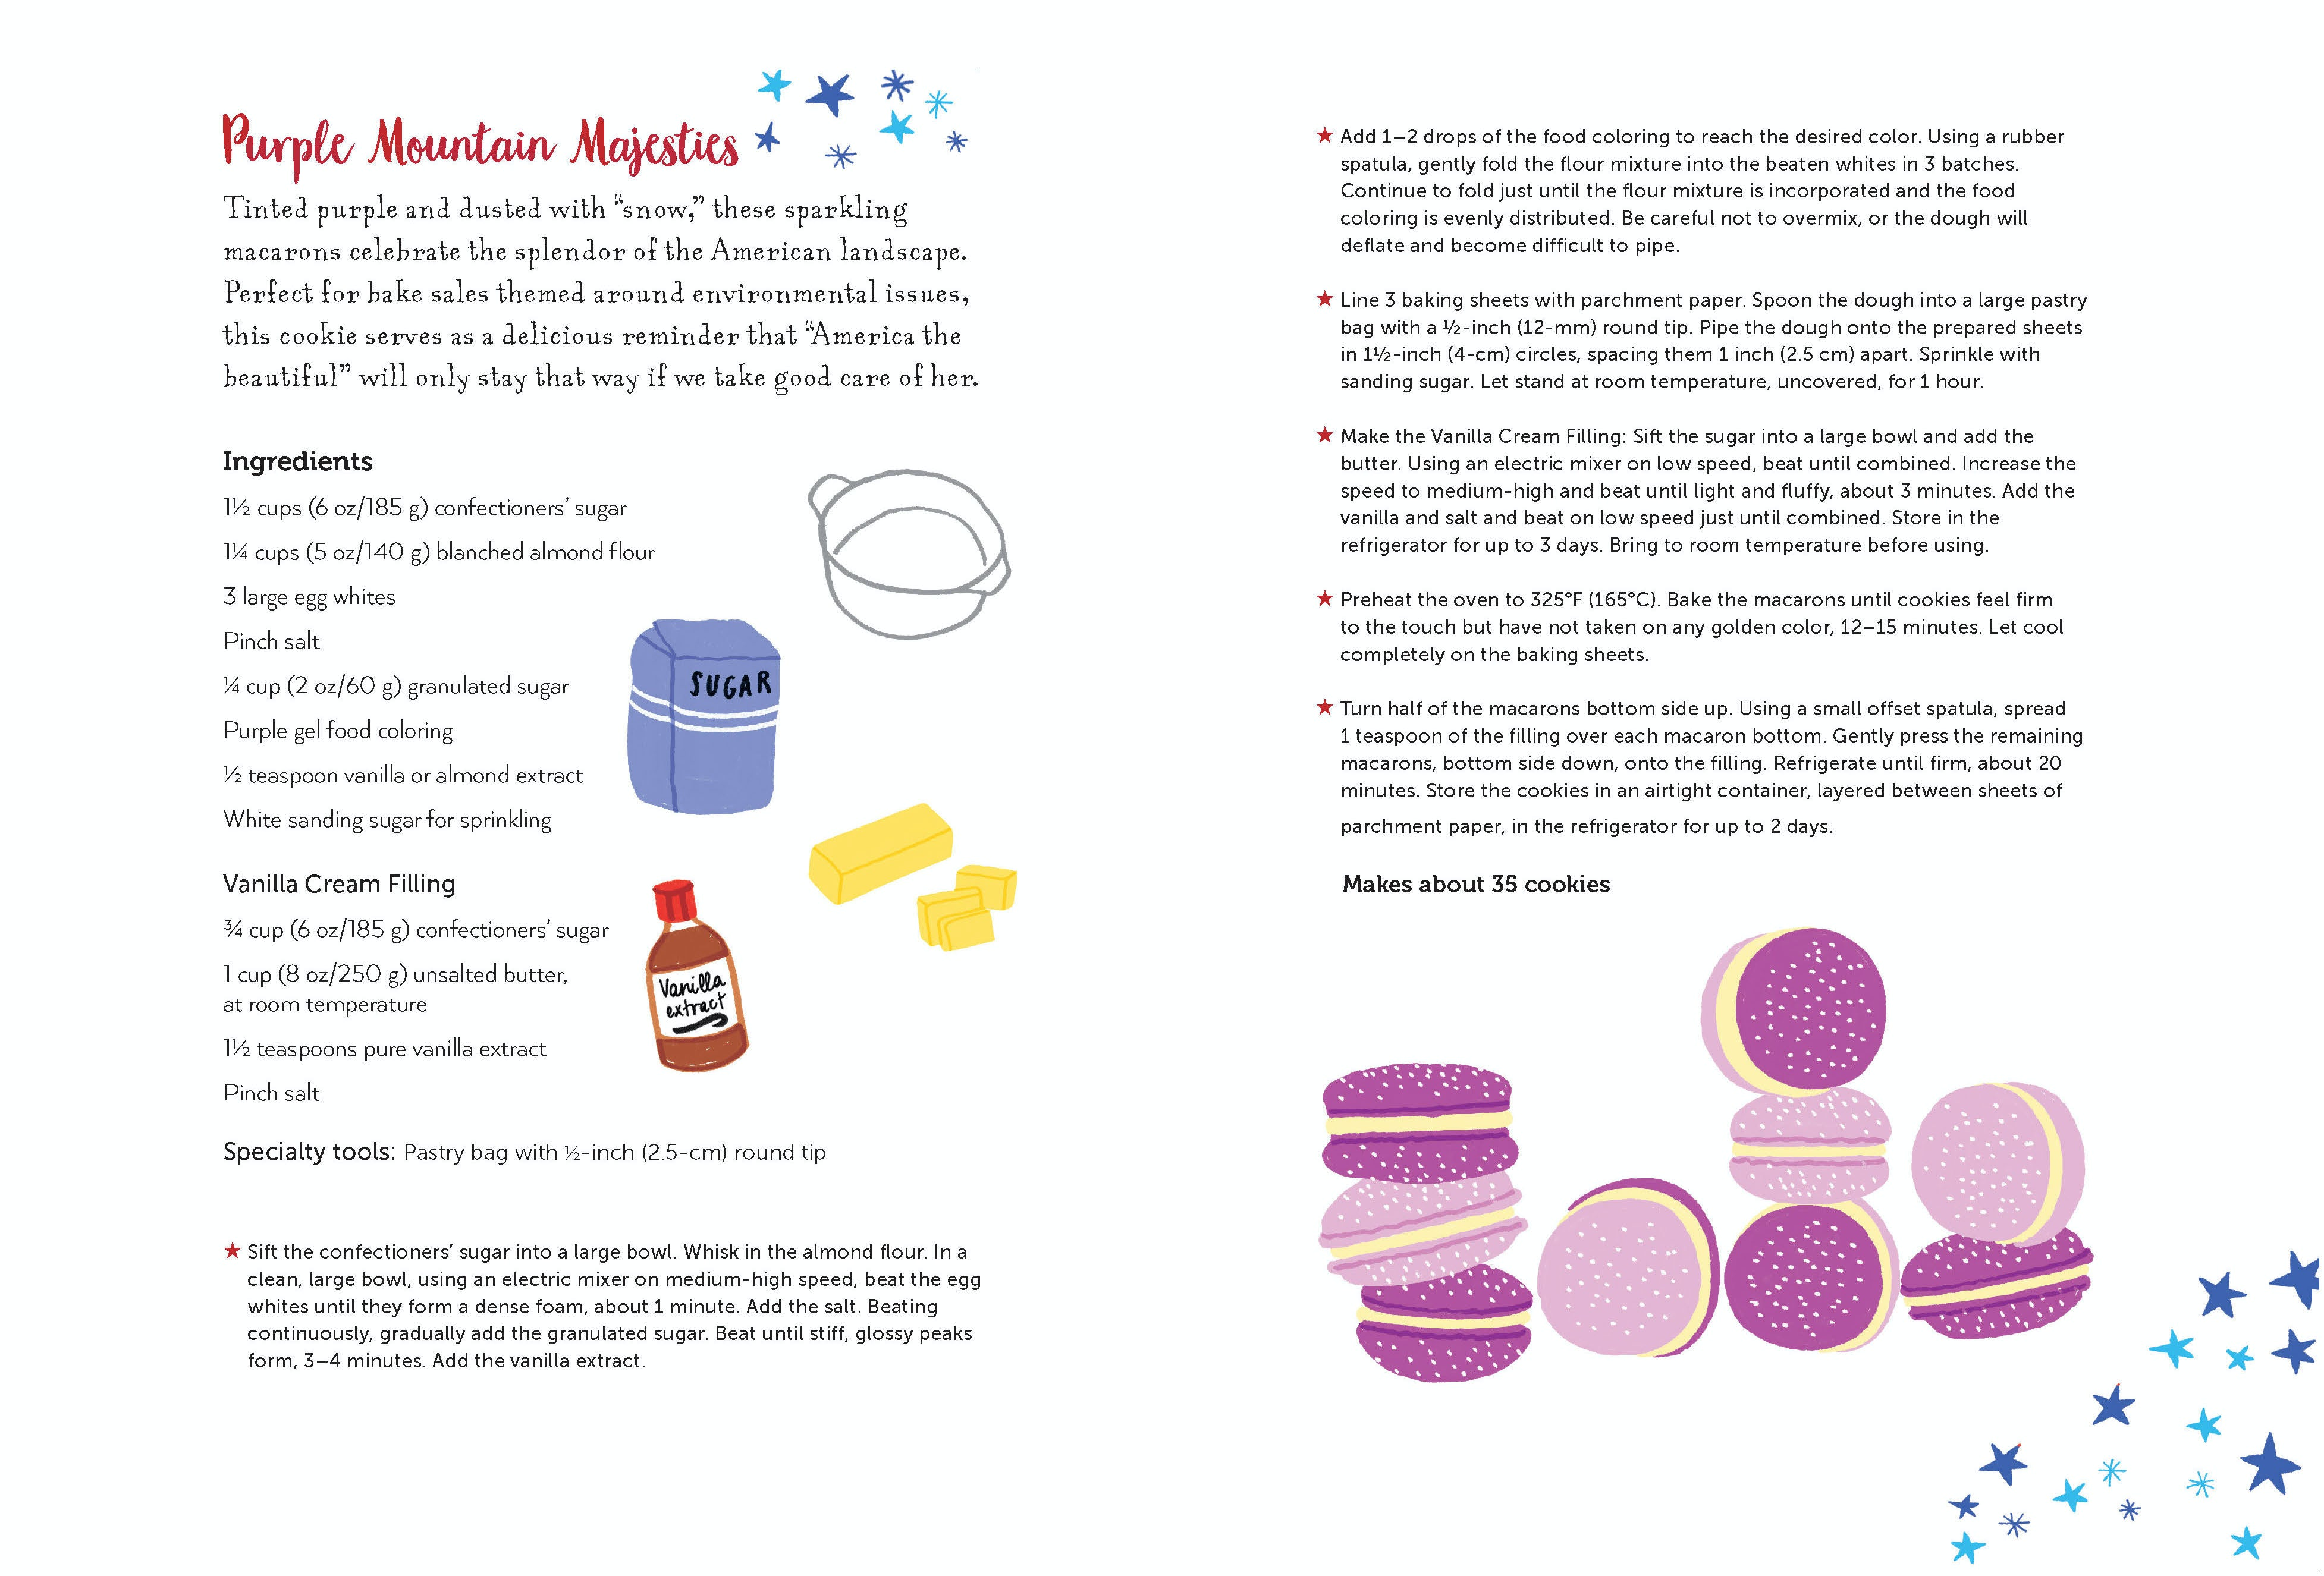 Best How To Make Light Purple Food Colouring Image Collection